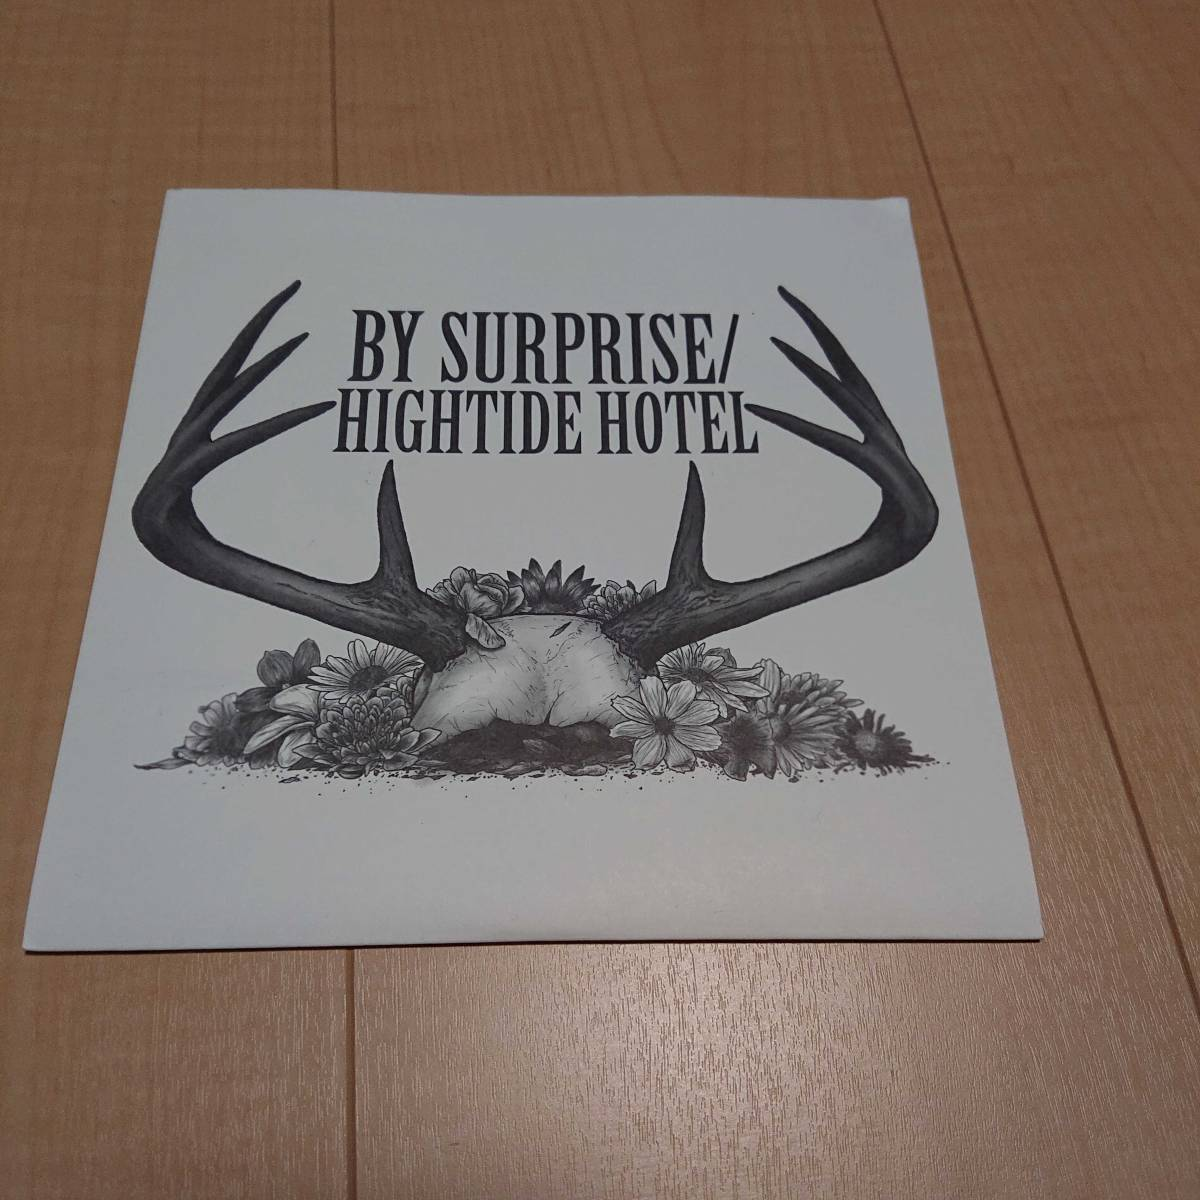 【By Surprise - Hightide Hotel /split】algernon cadwallader snowing braid mineral